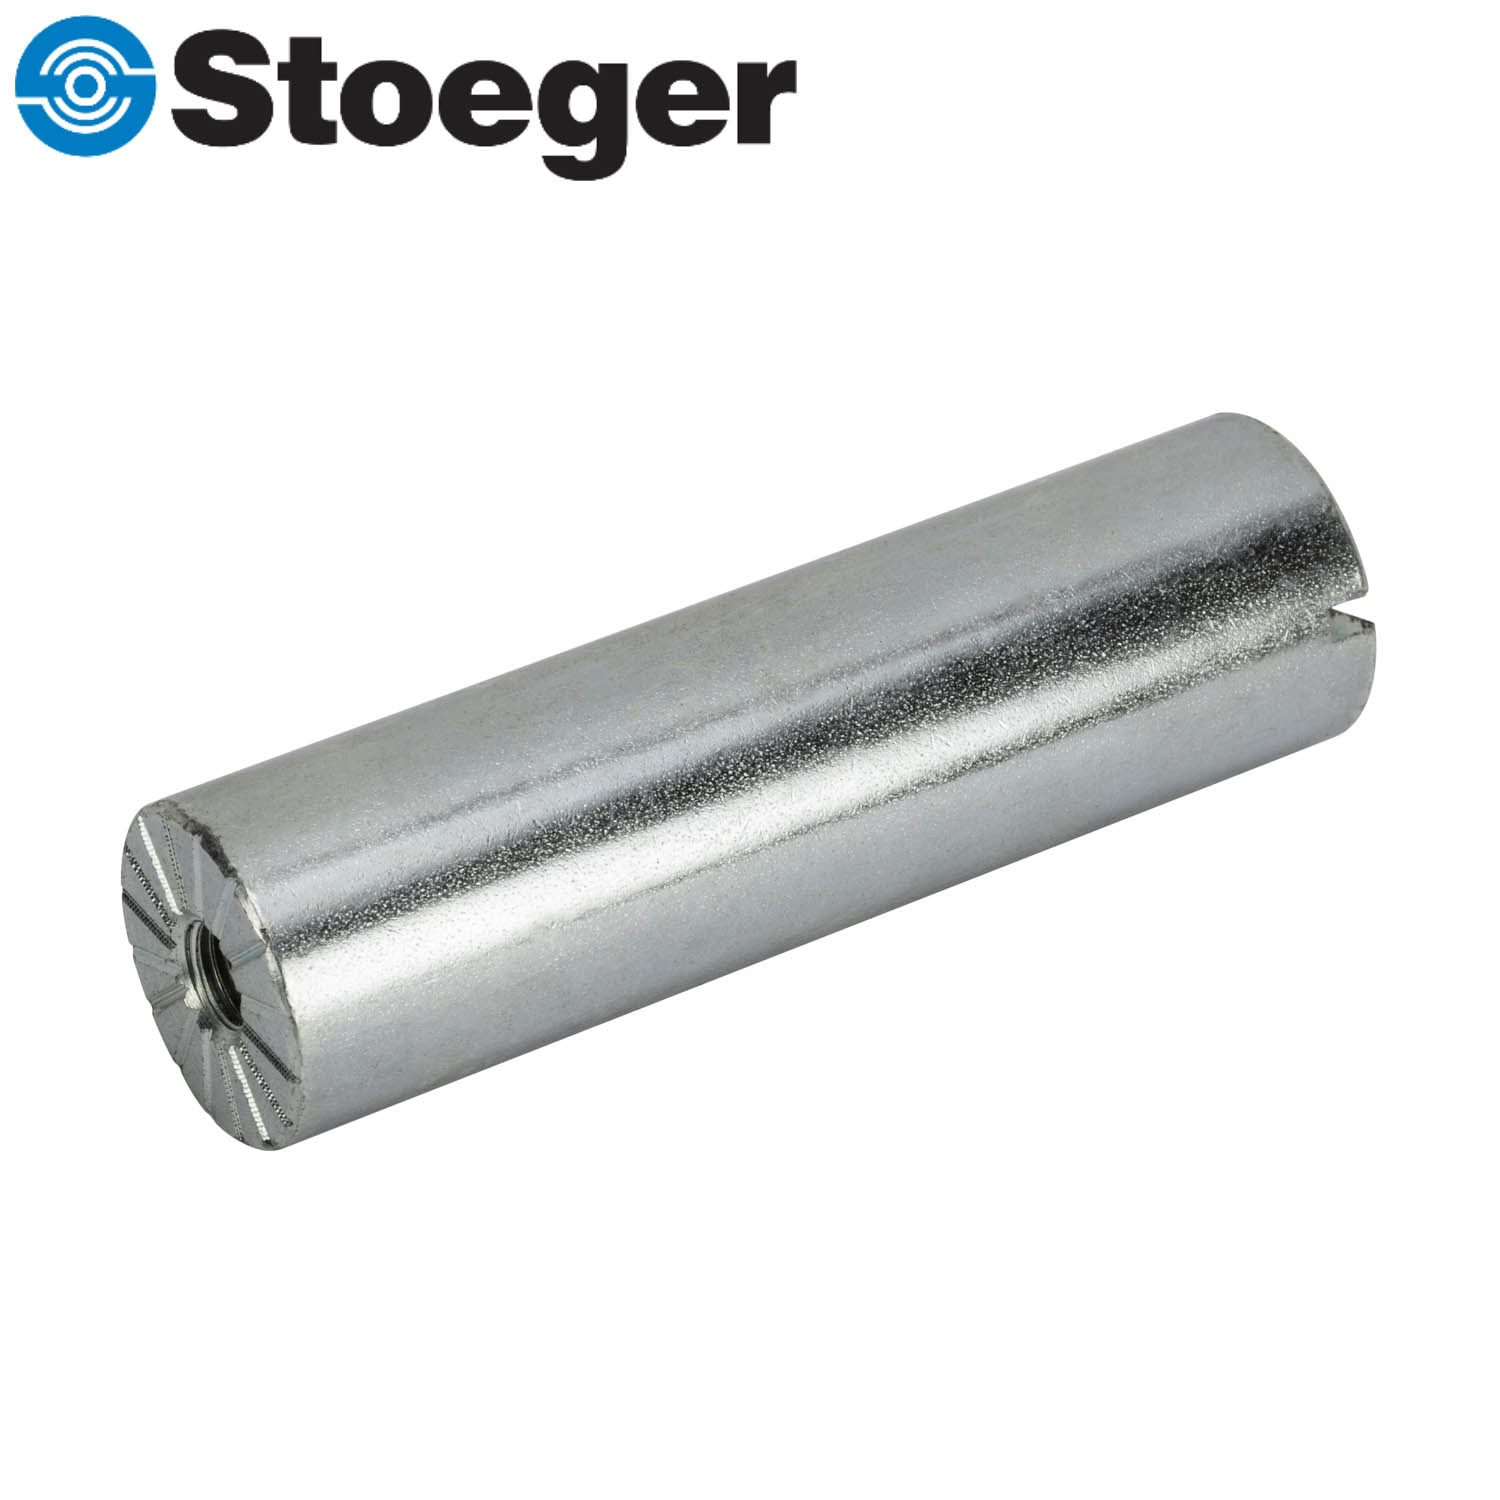 Stoeger m recoil reducer mgw